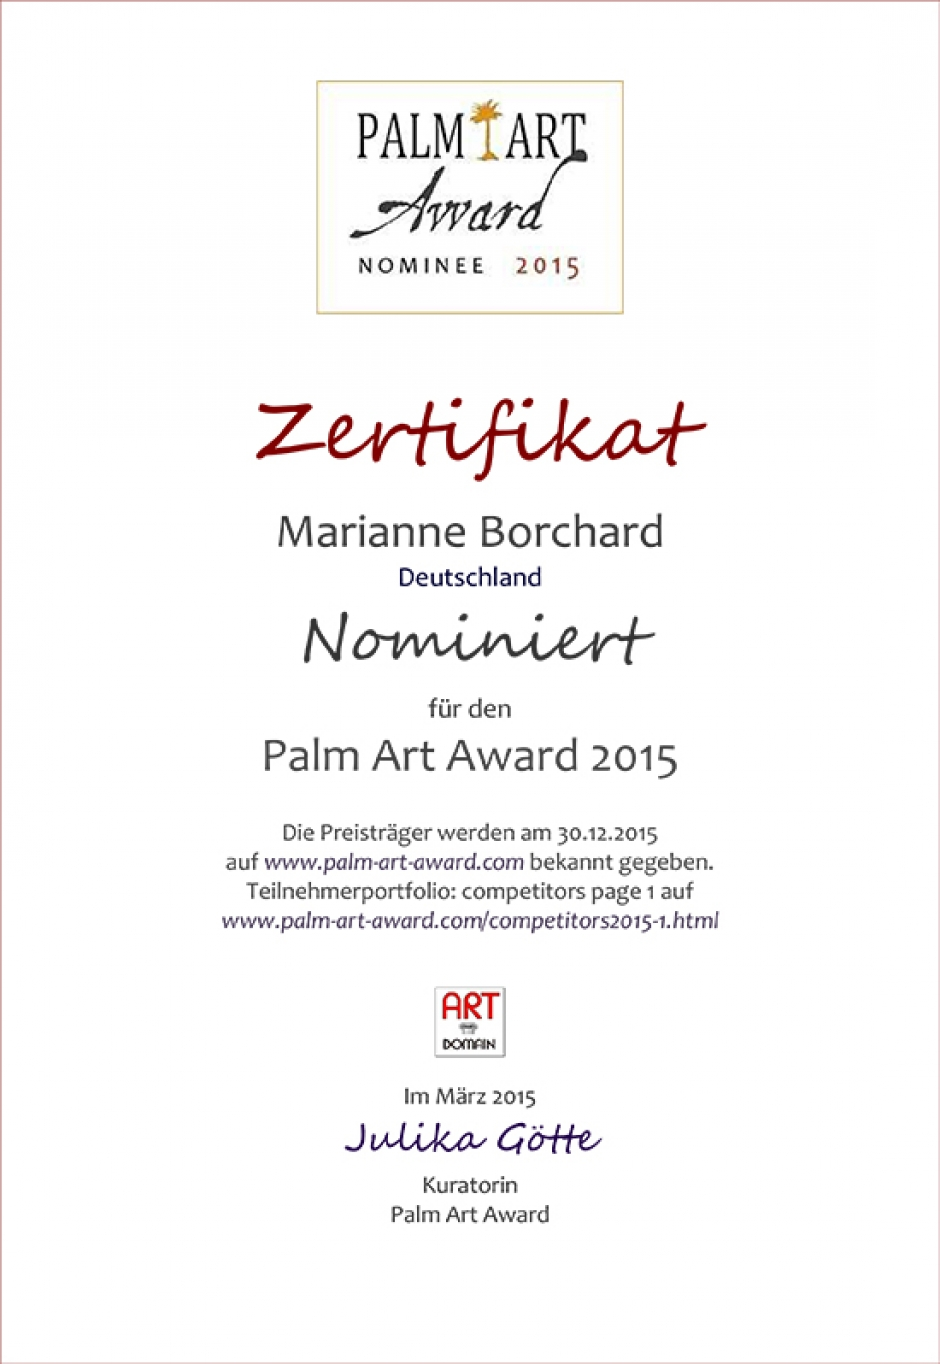 PALM ART AWARD 2015